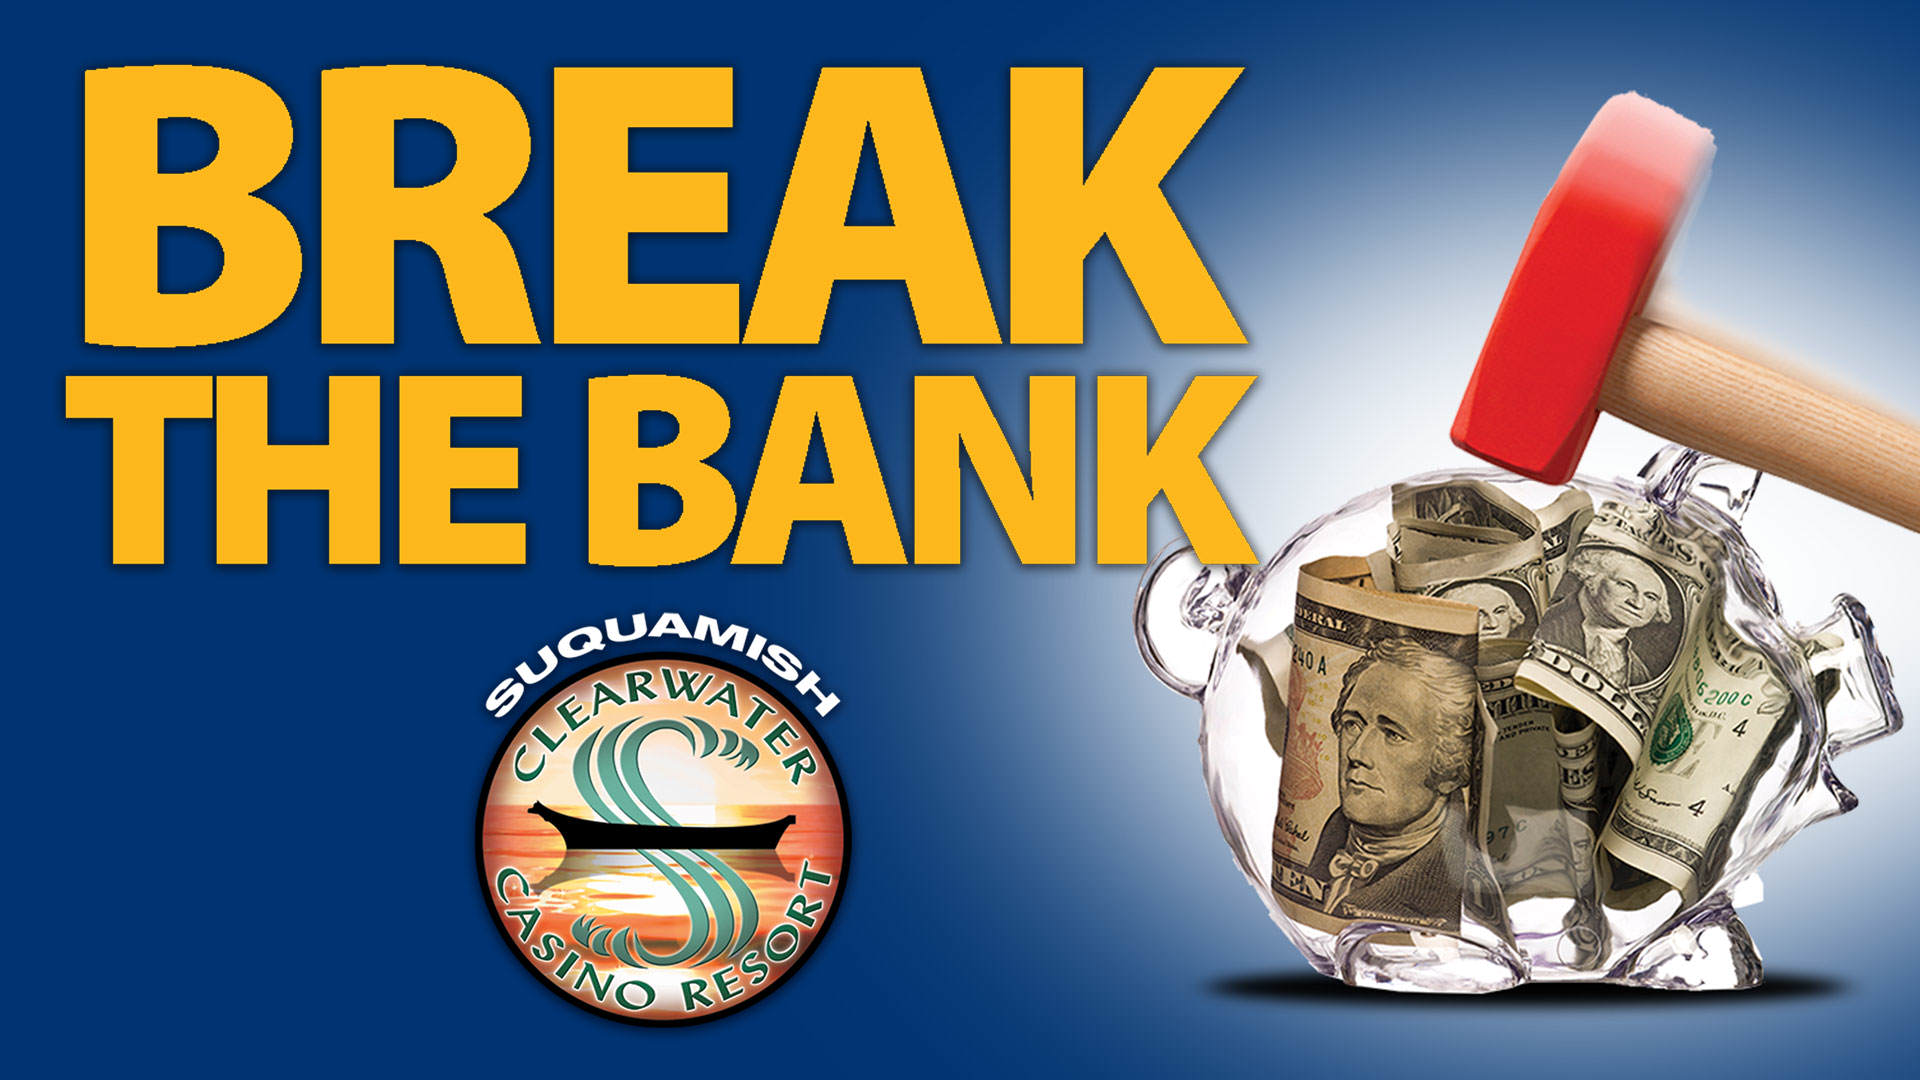 Break The Bank at Clearwater Casino Resort